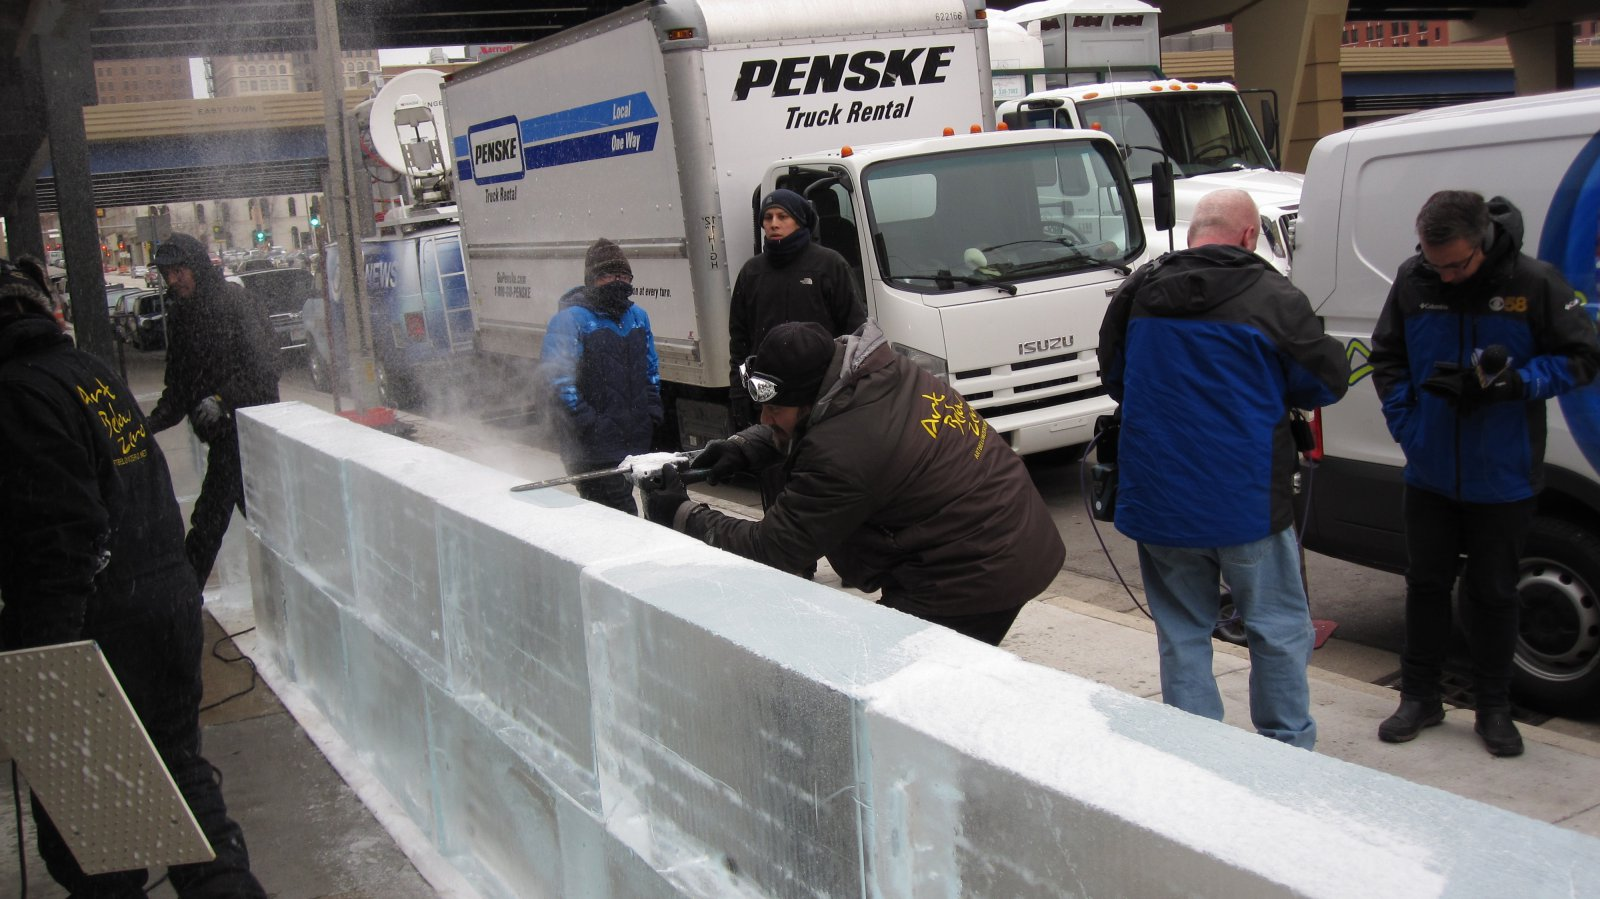 Building the ice bar. Photo by Michael Horne.